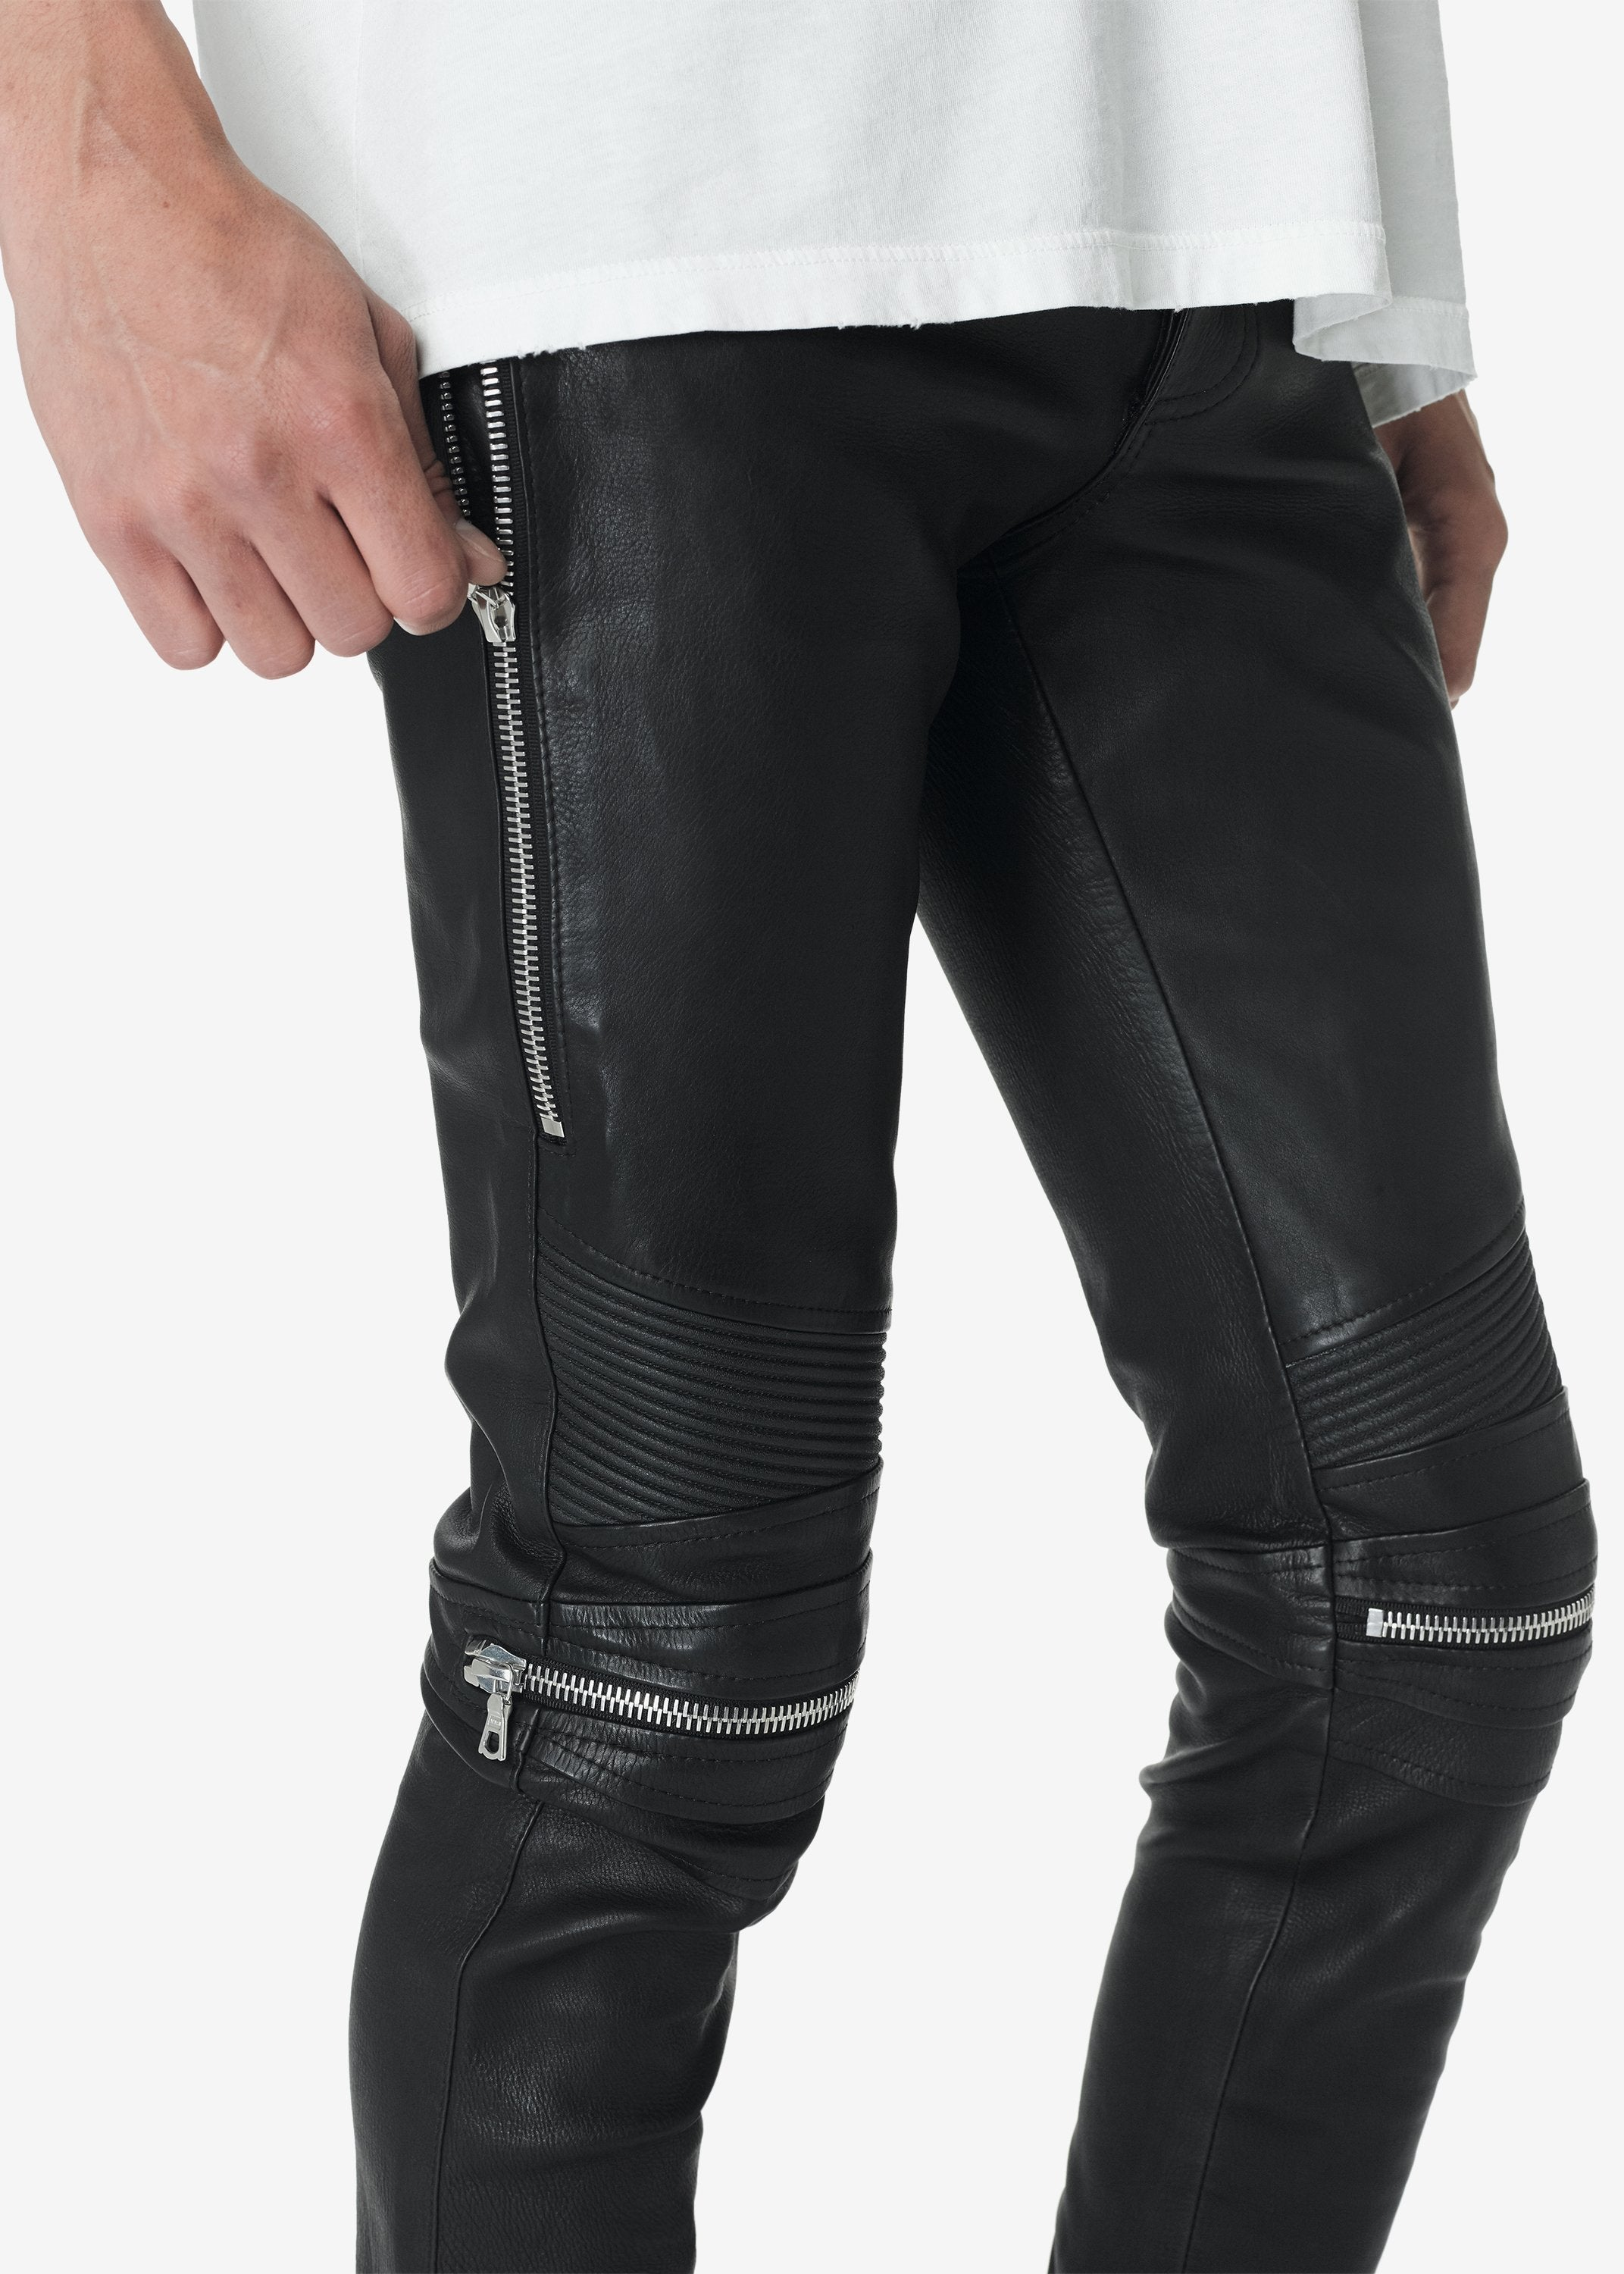 mx2-leather-pants-black-silver-image-6